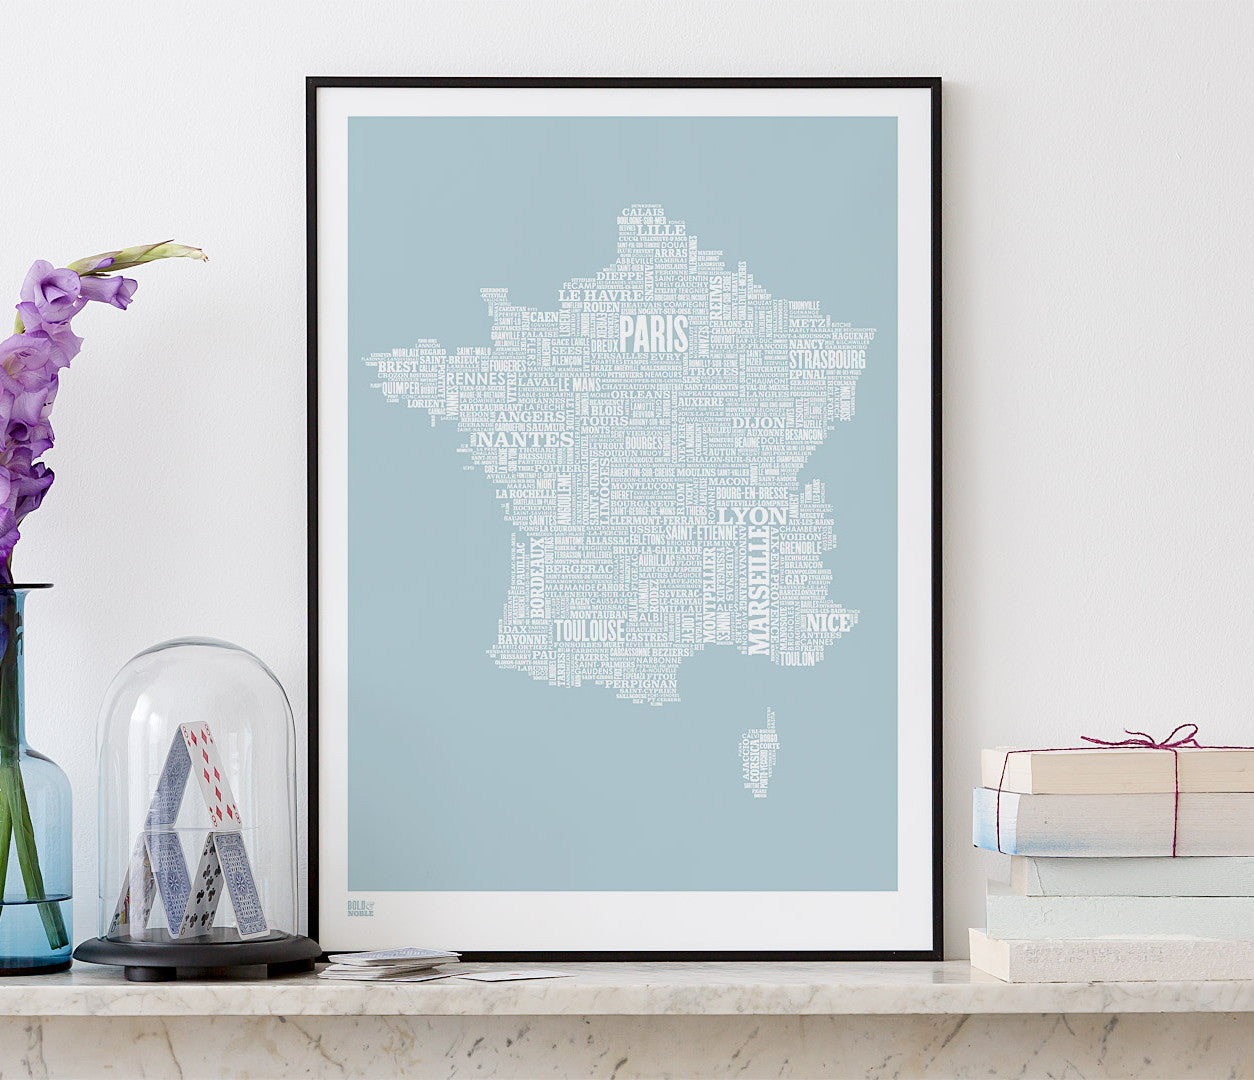 Pictures and Wall Art, Screen Printed France Type Map in Duck Egg Blue